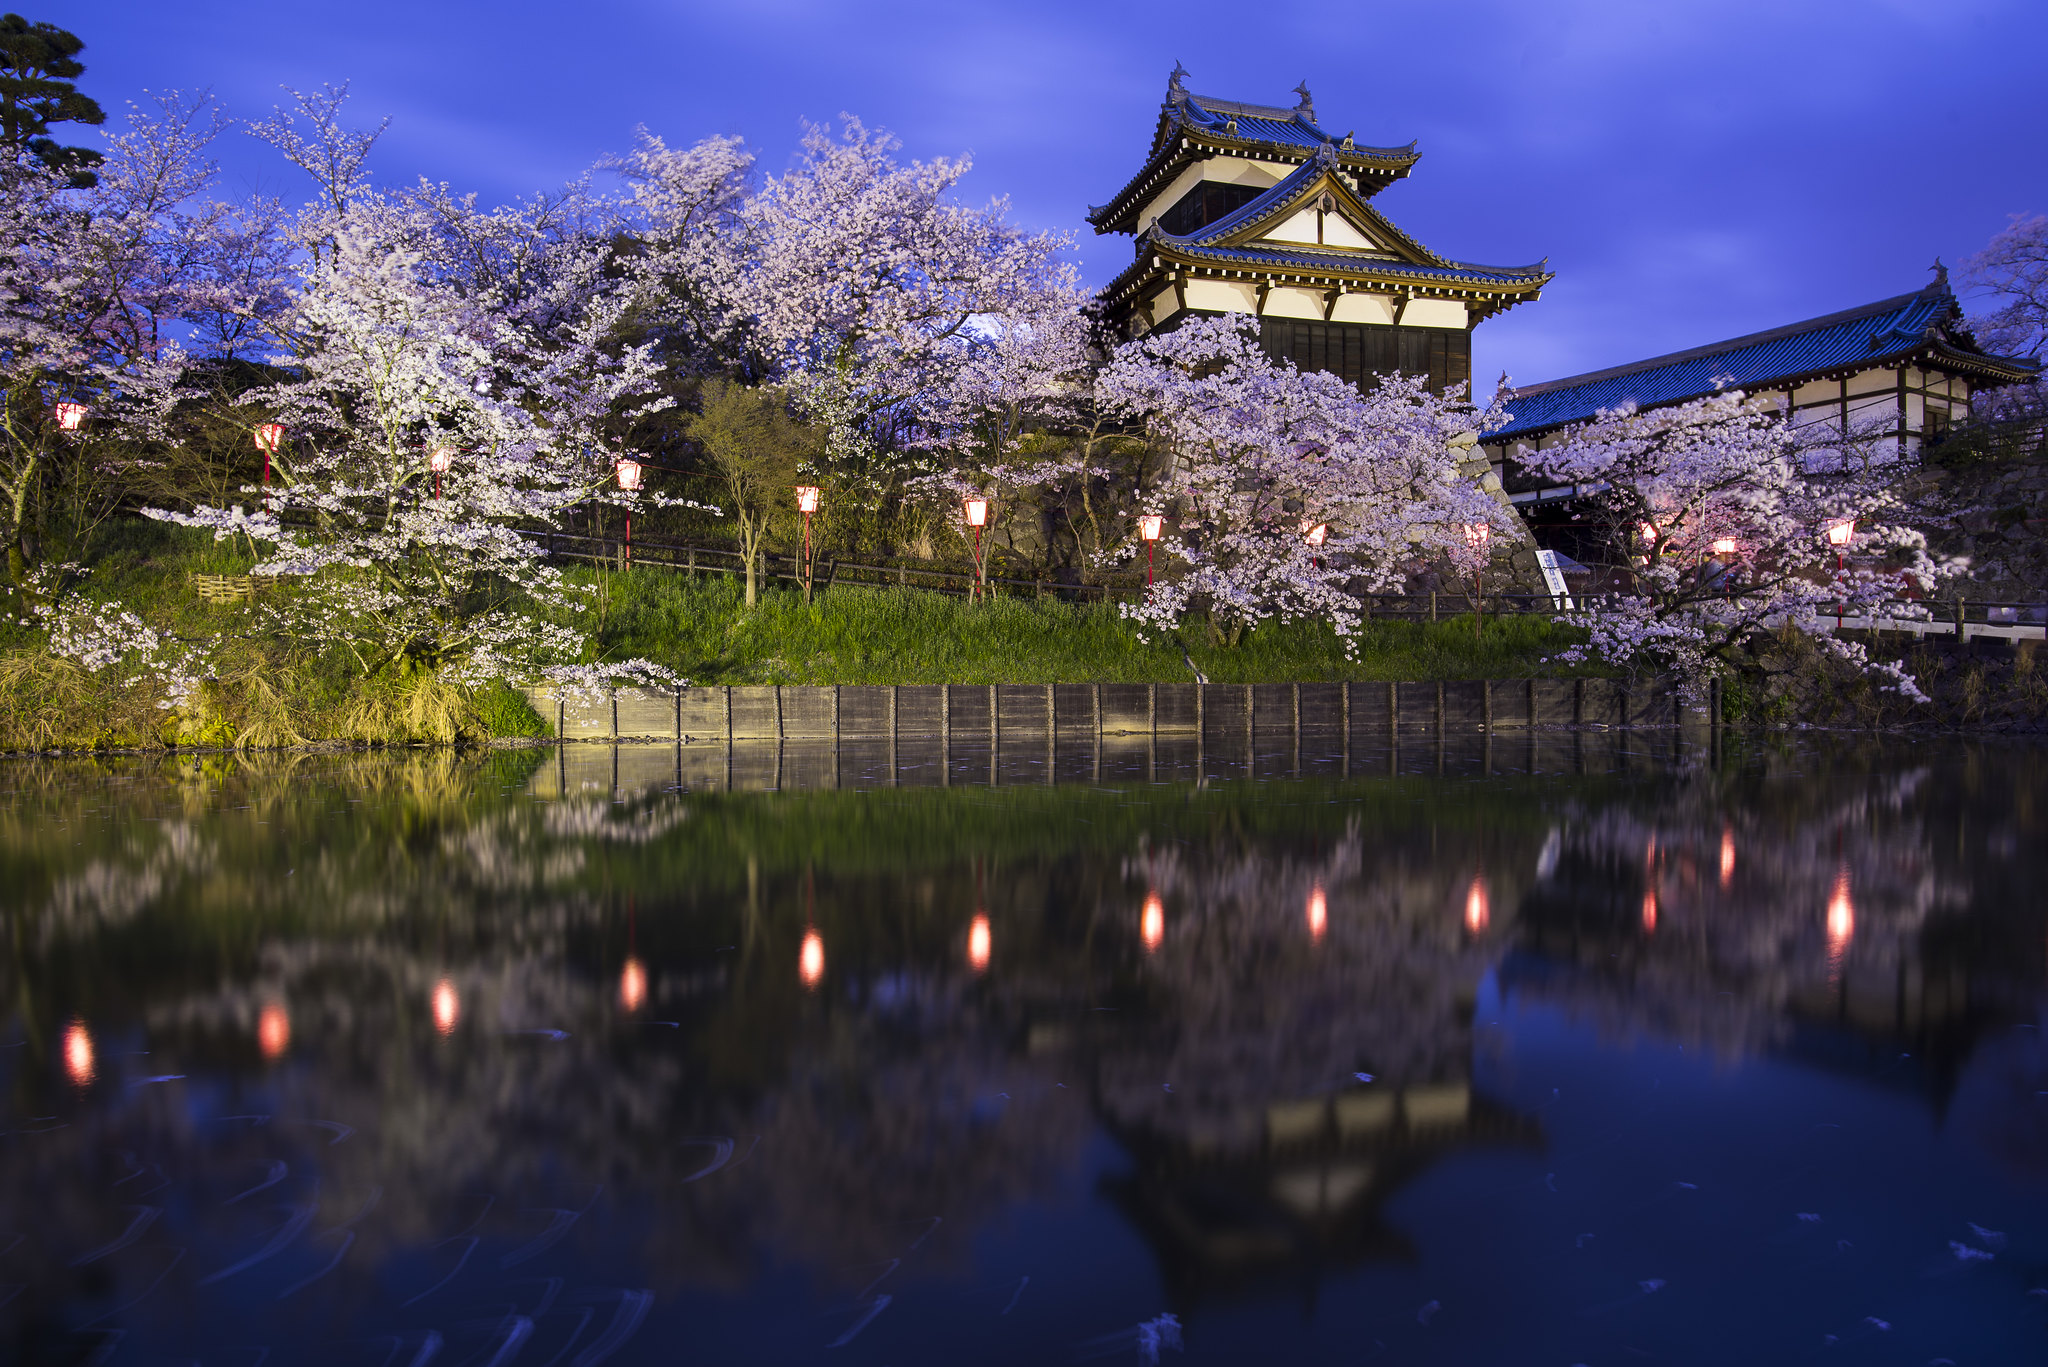 Best Cherry Blossom Viewing Spots All Over Japan